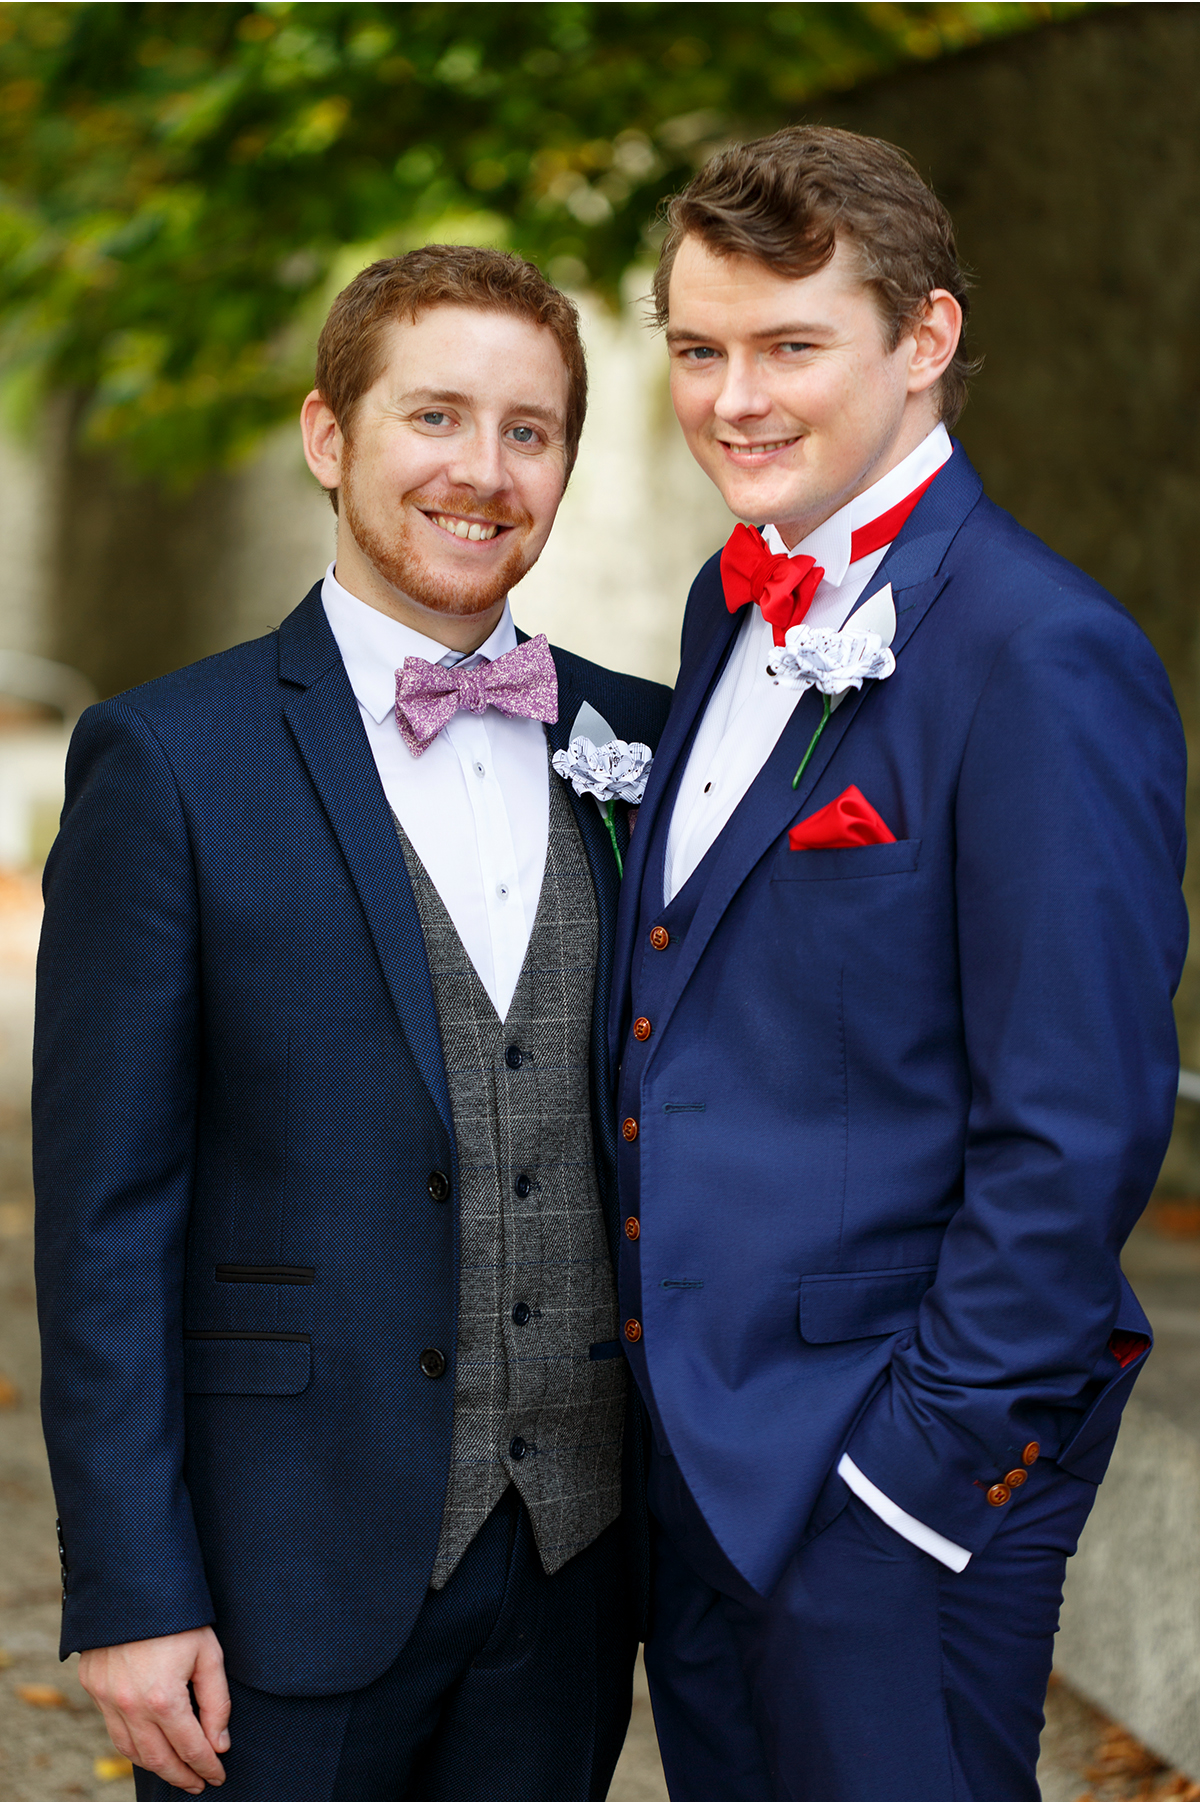 gay wedding- same sex wedding Ireland